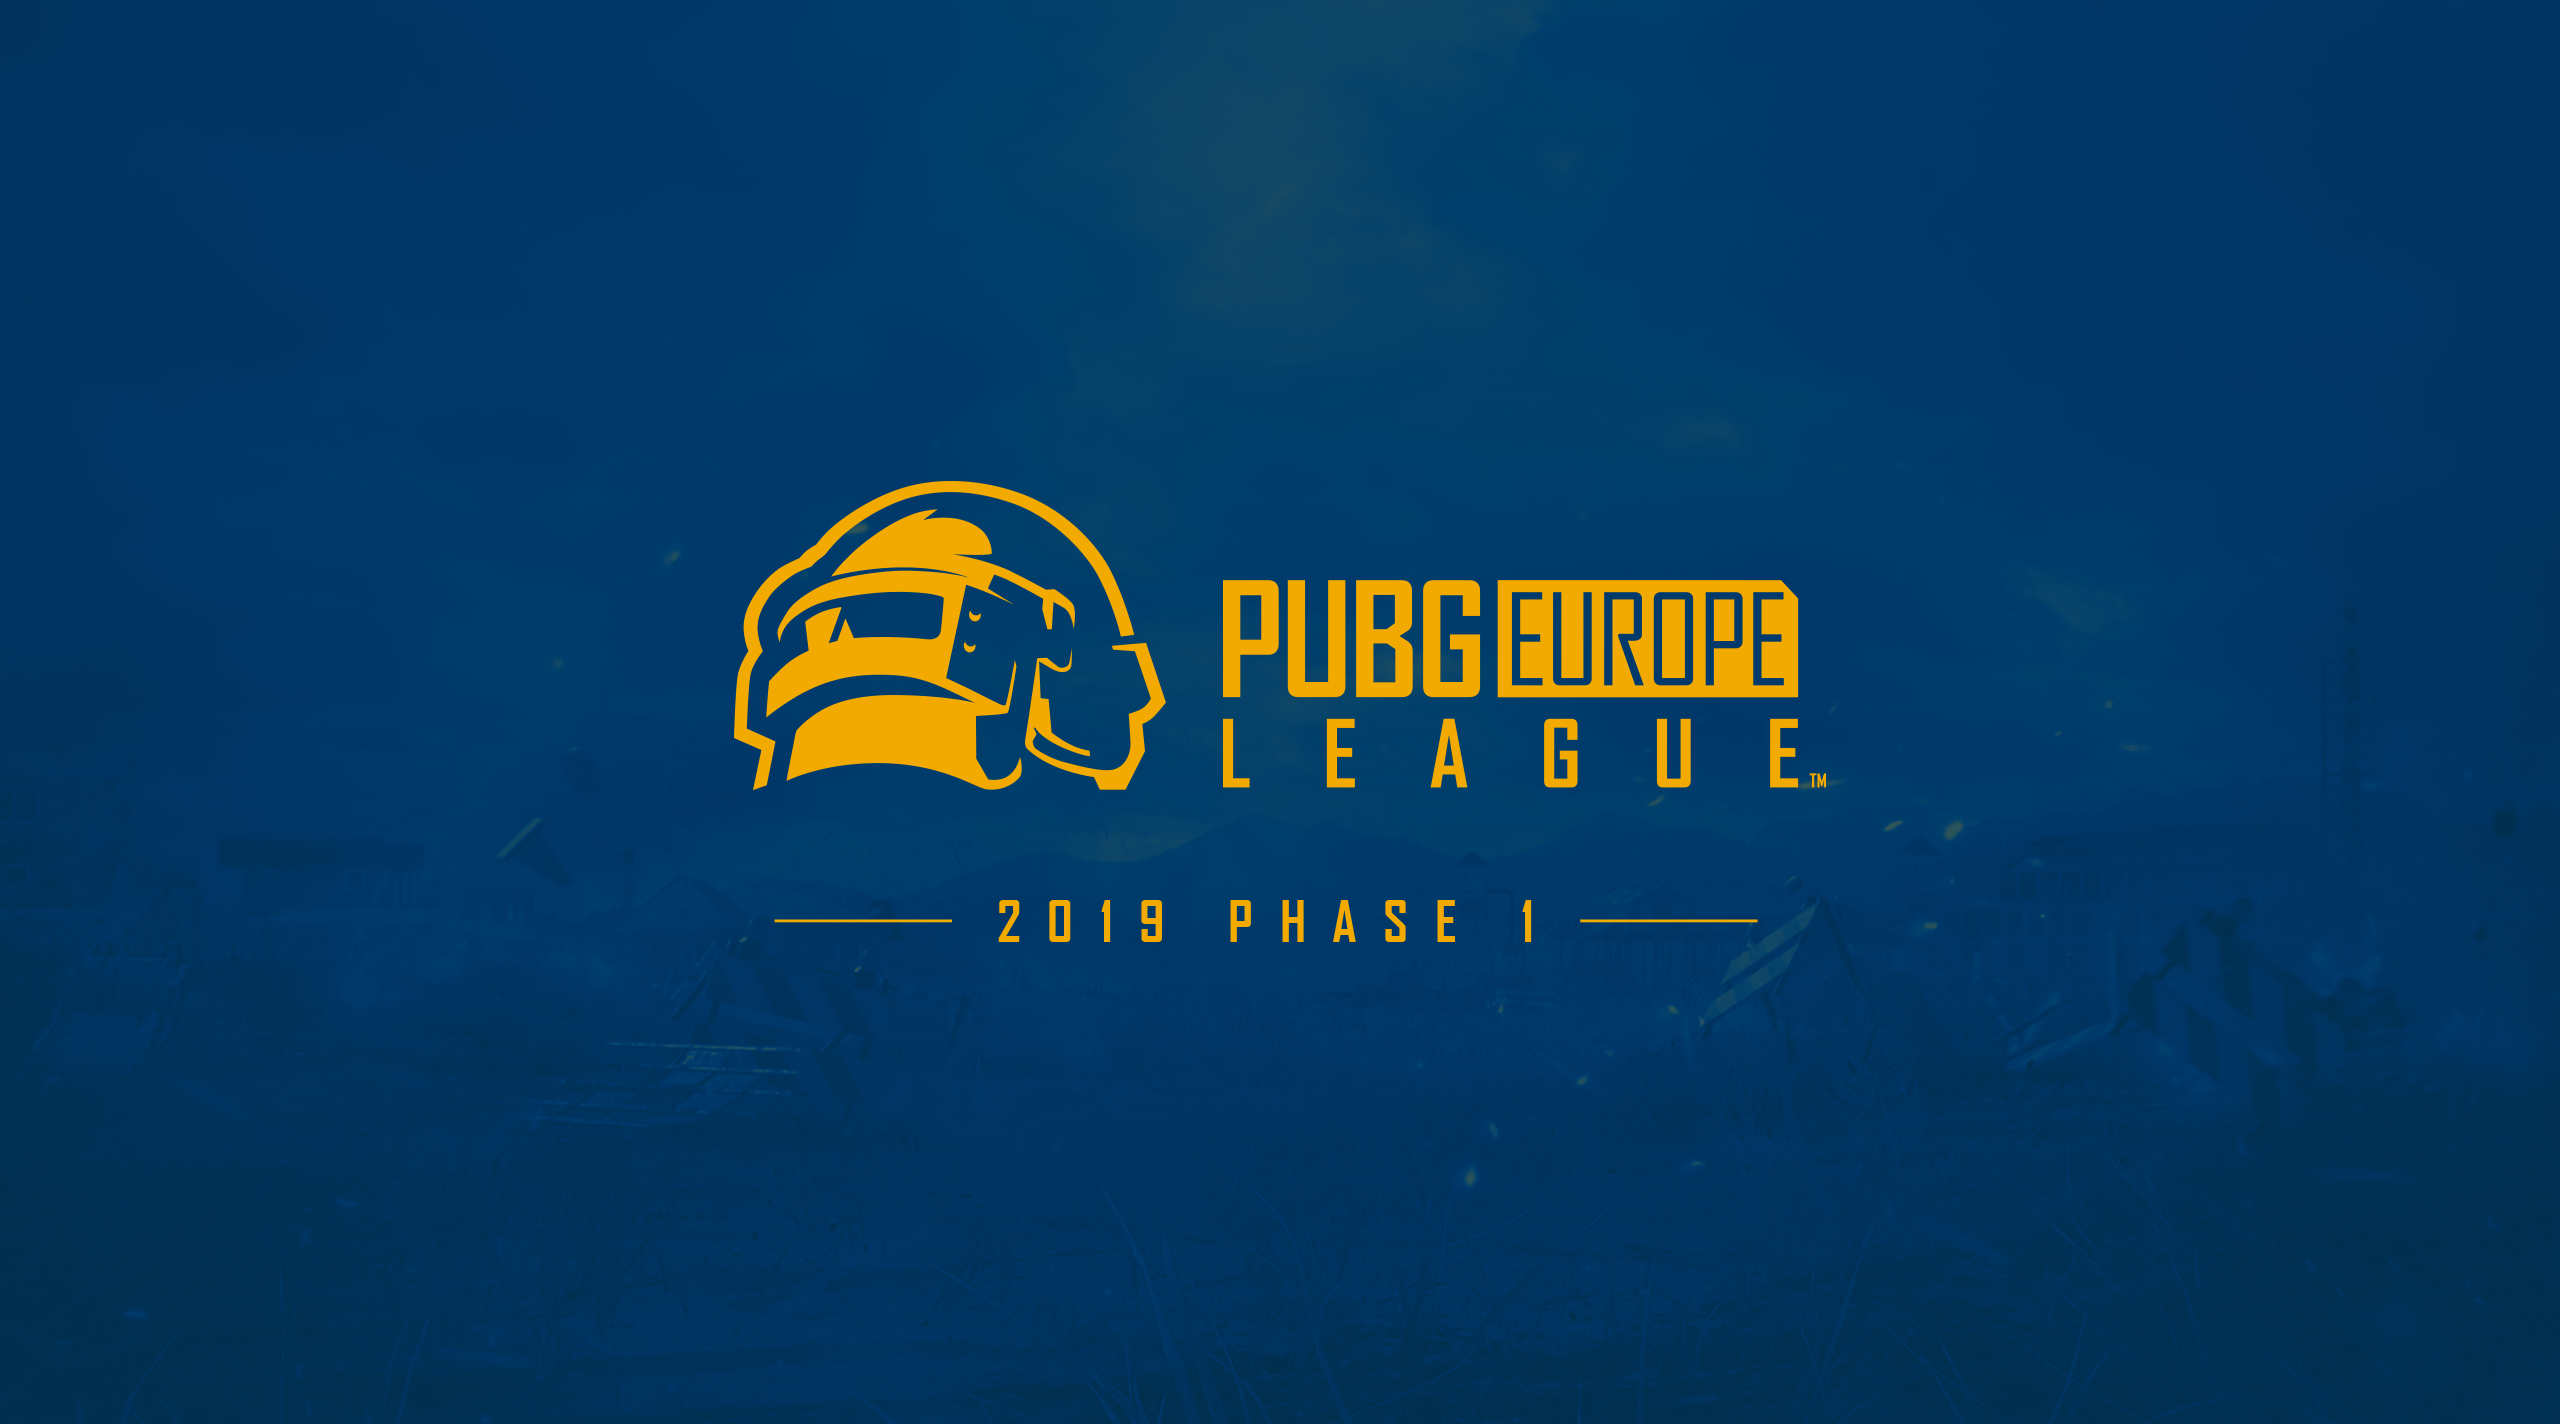 Everything You Need To Know About PUBG Europe League